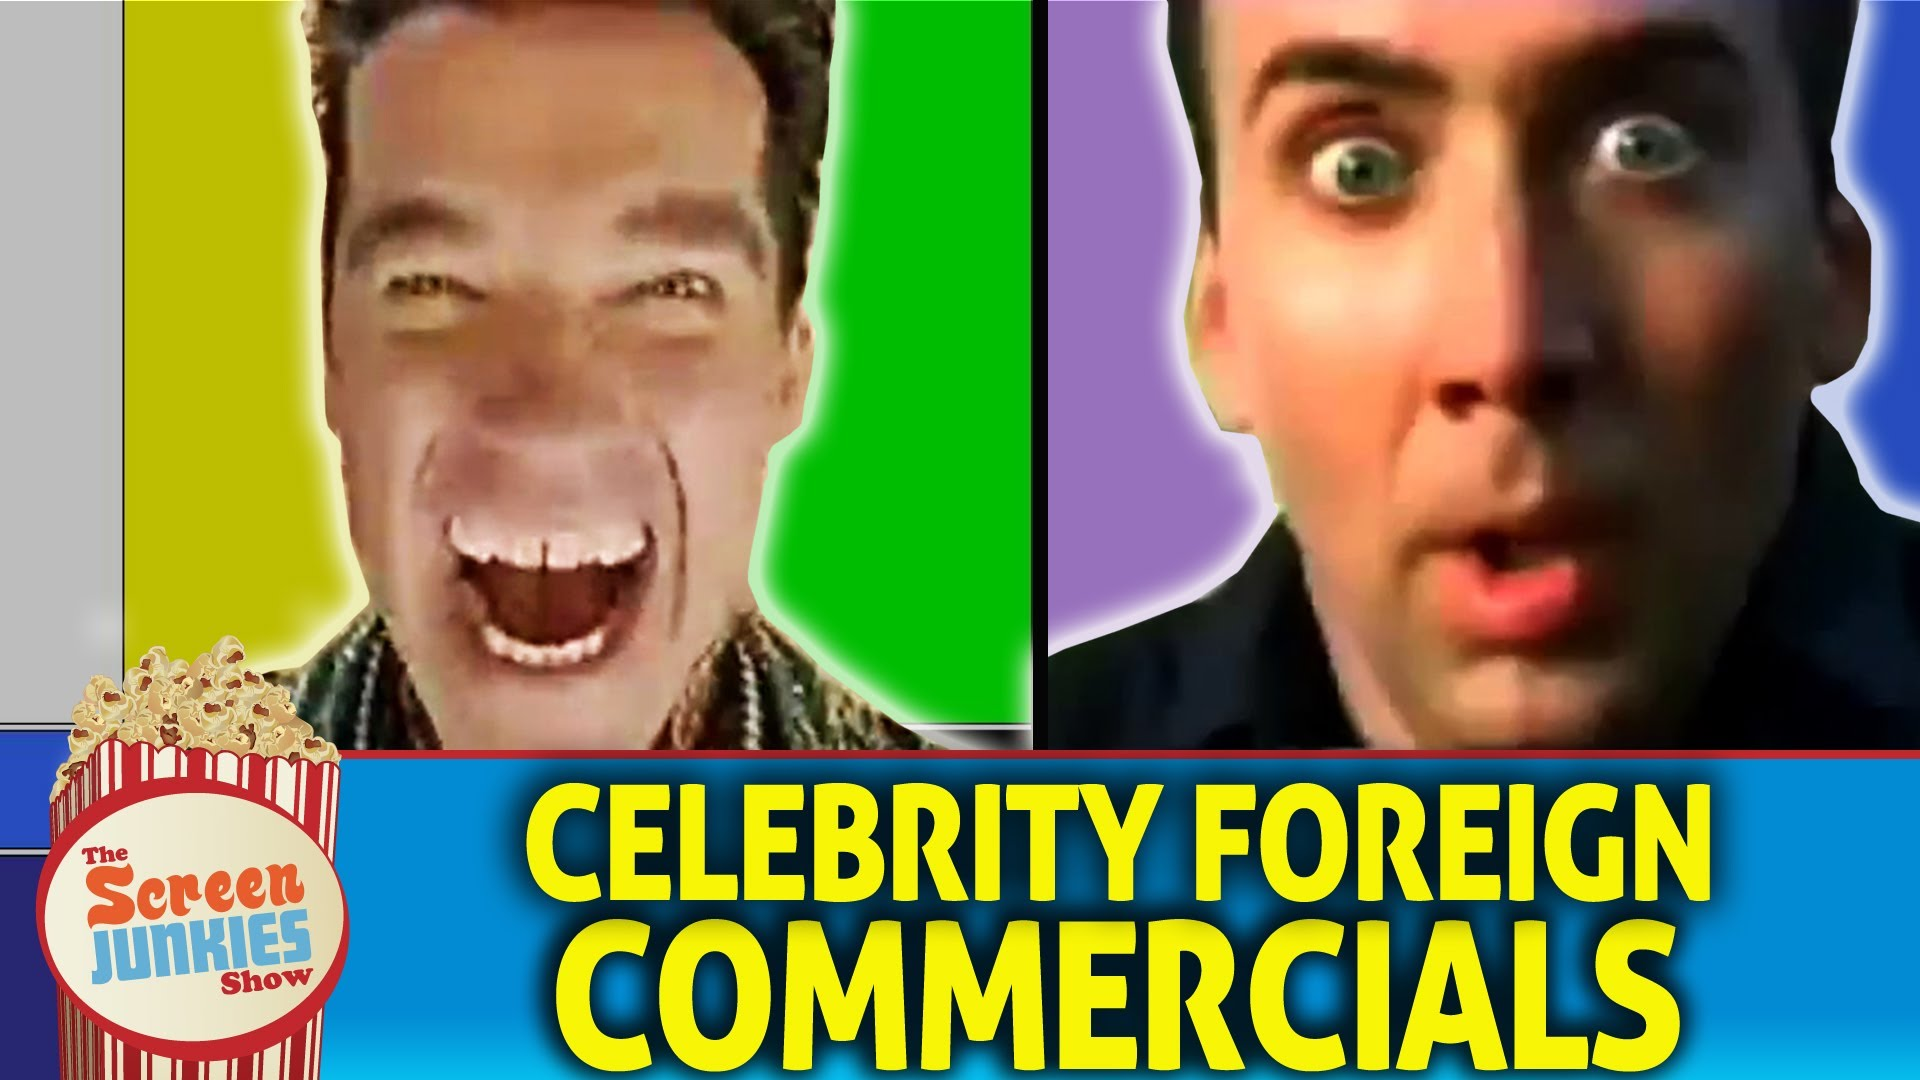 celebrities in commercials Ellen freeman reveals the secret our favorite celebrities don't want us to know about in showing the japanese commercials they've acted in.